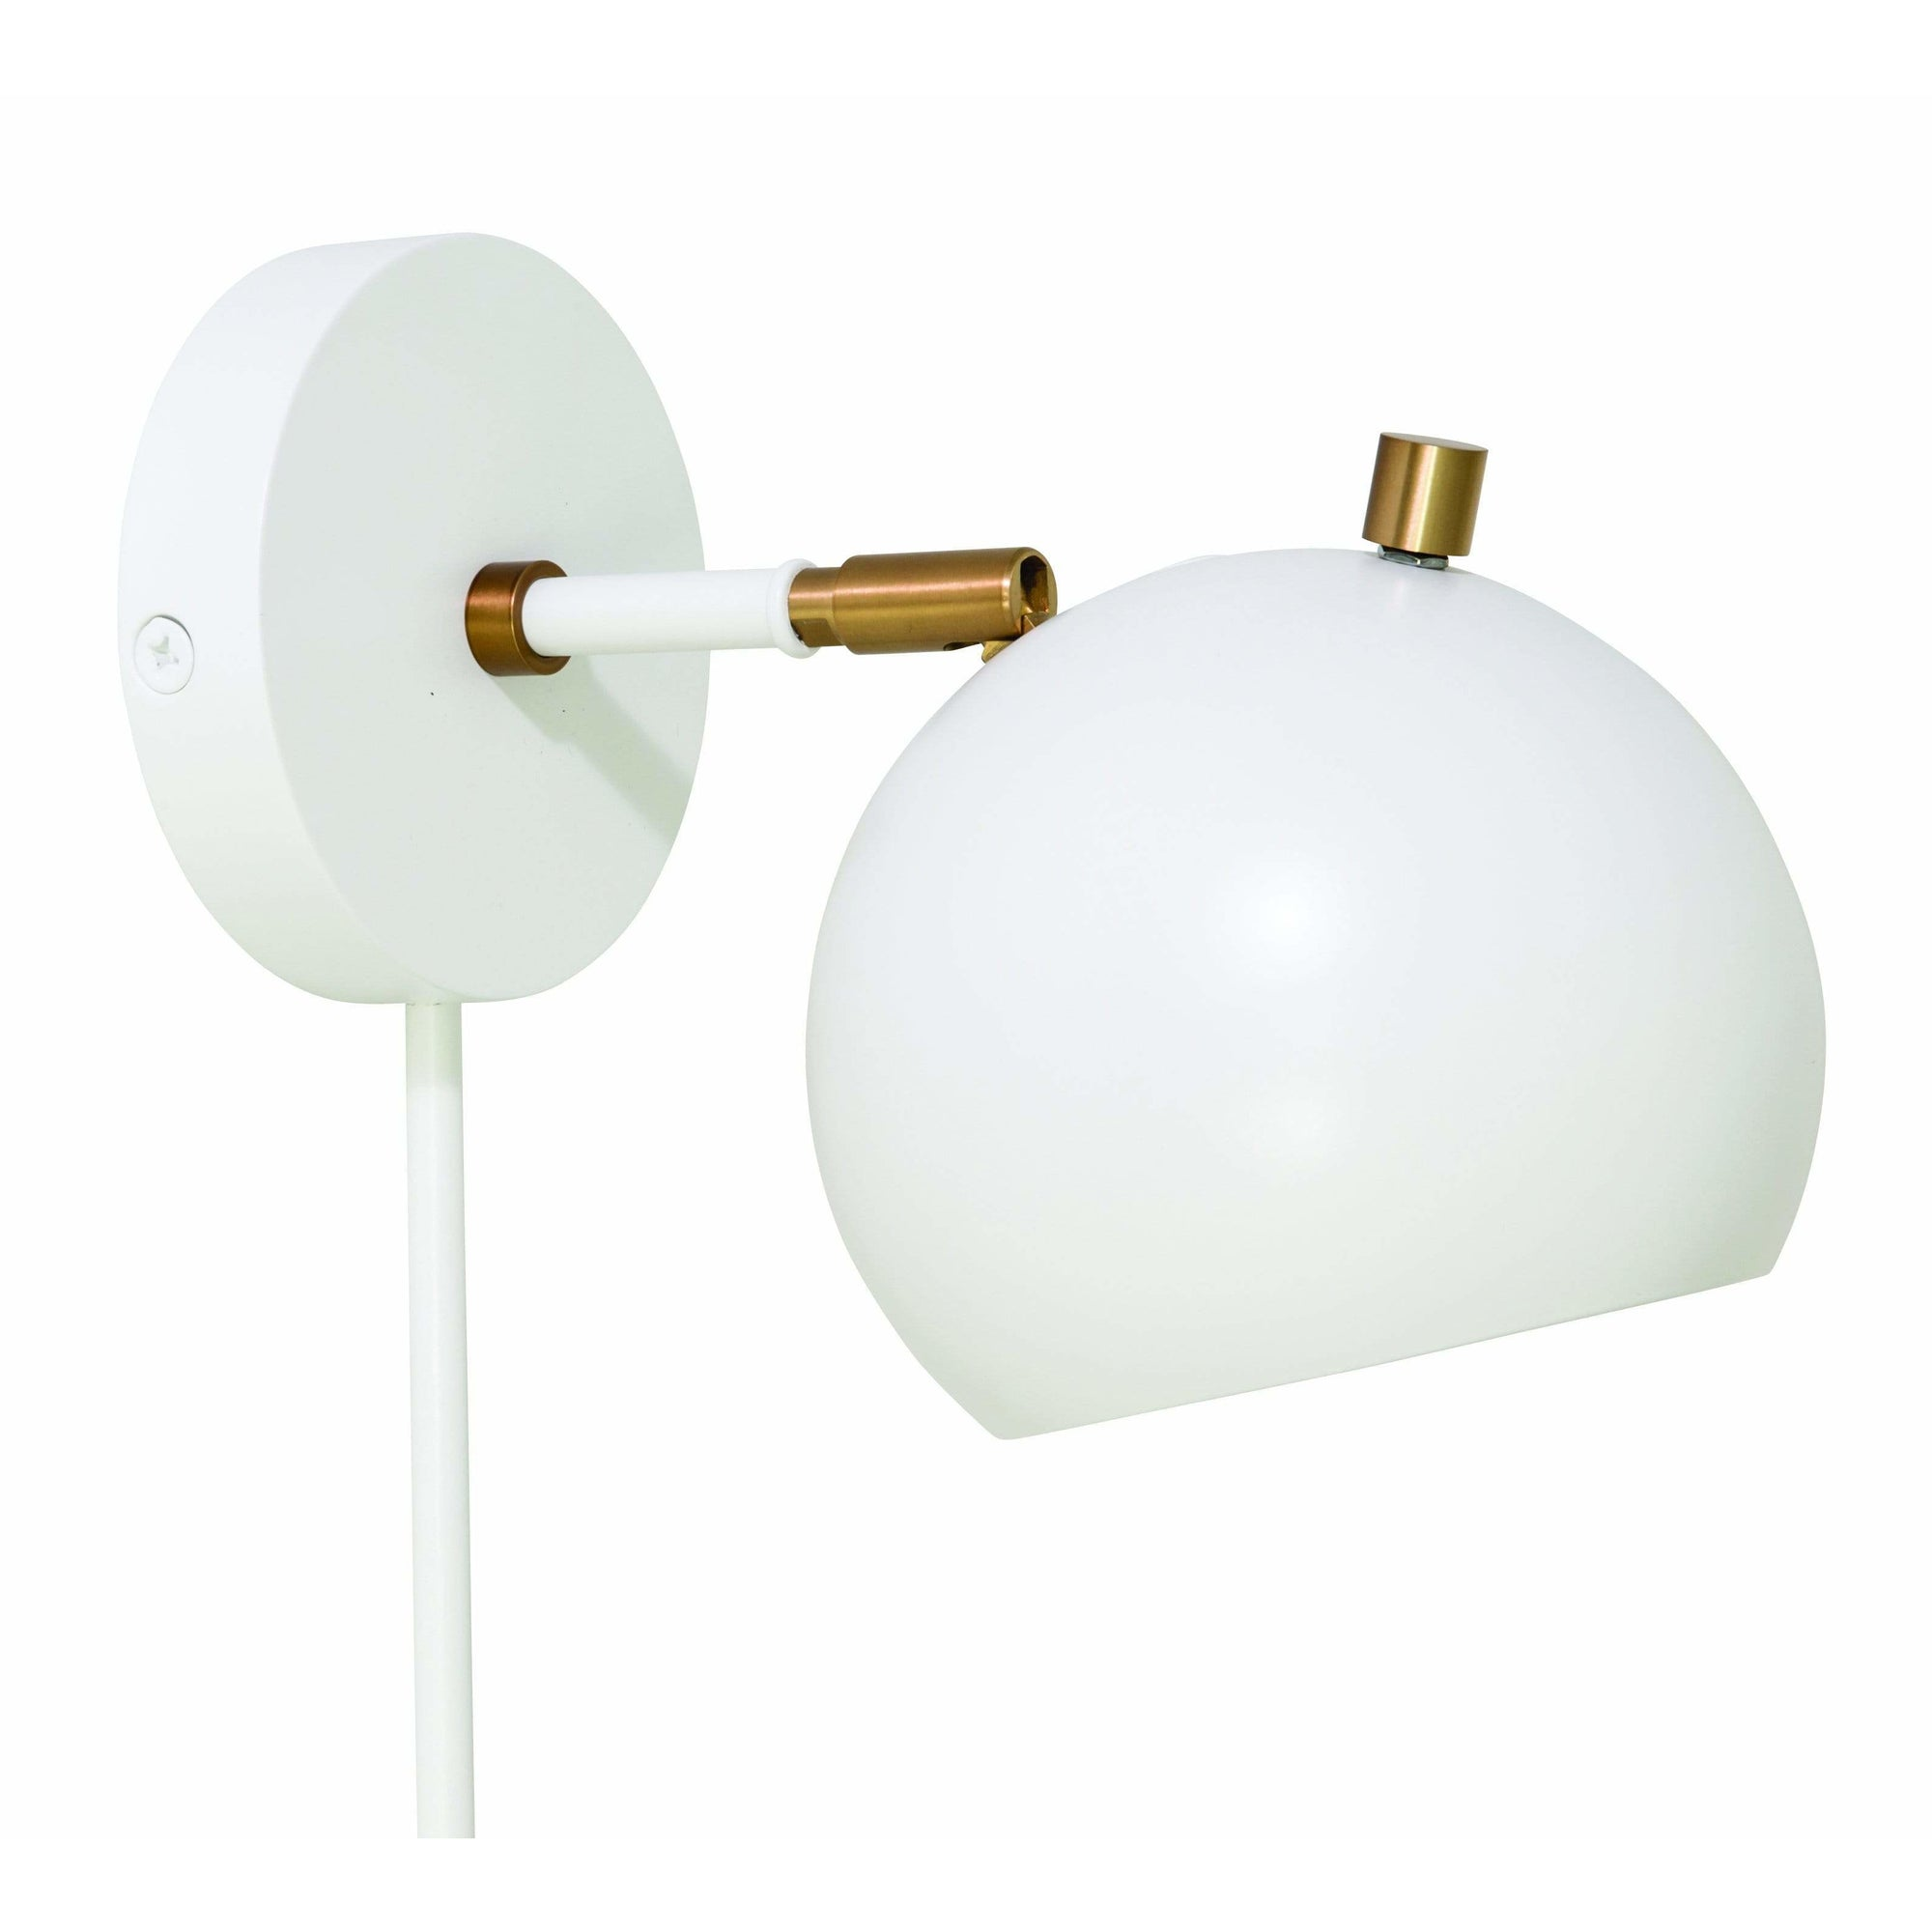 House Of Troy Wall Lamps Orwell Wall Lamp by House Of Troy OR775-WTWB